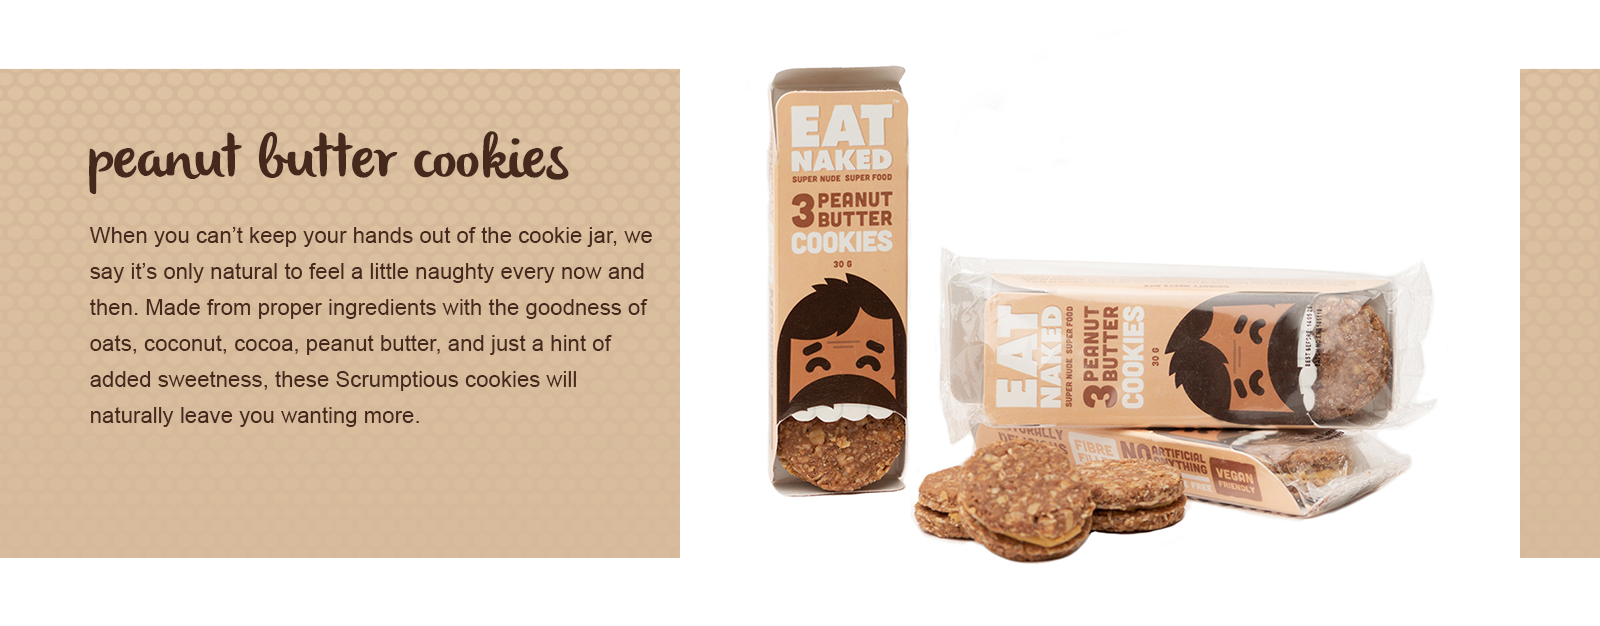 Product Peanut Butter Cookies - HOME